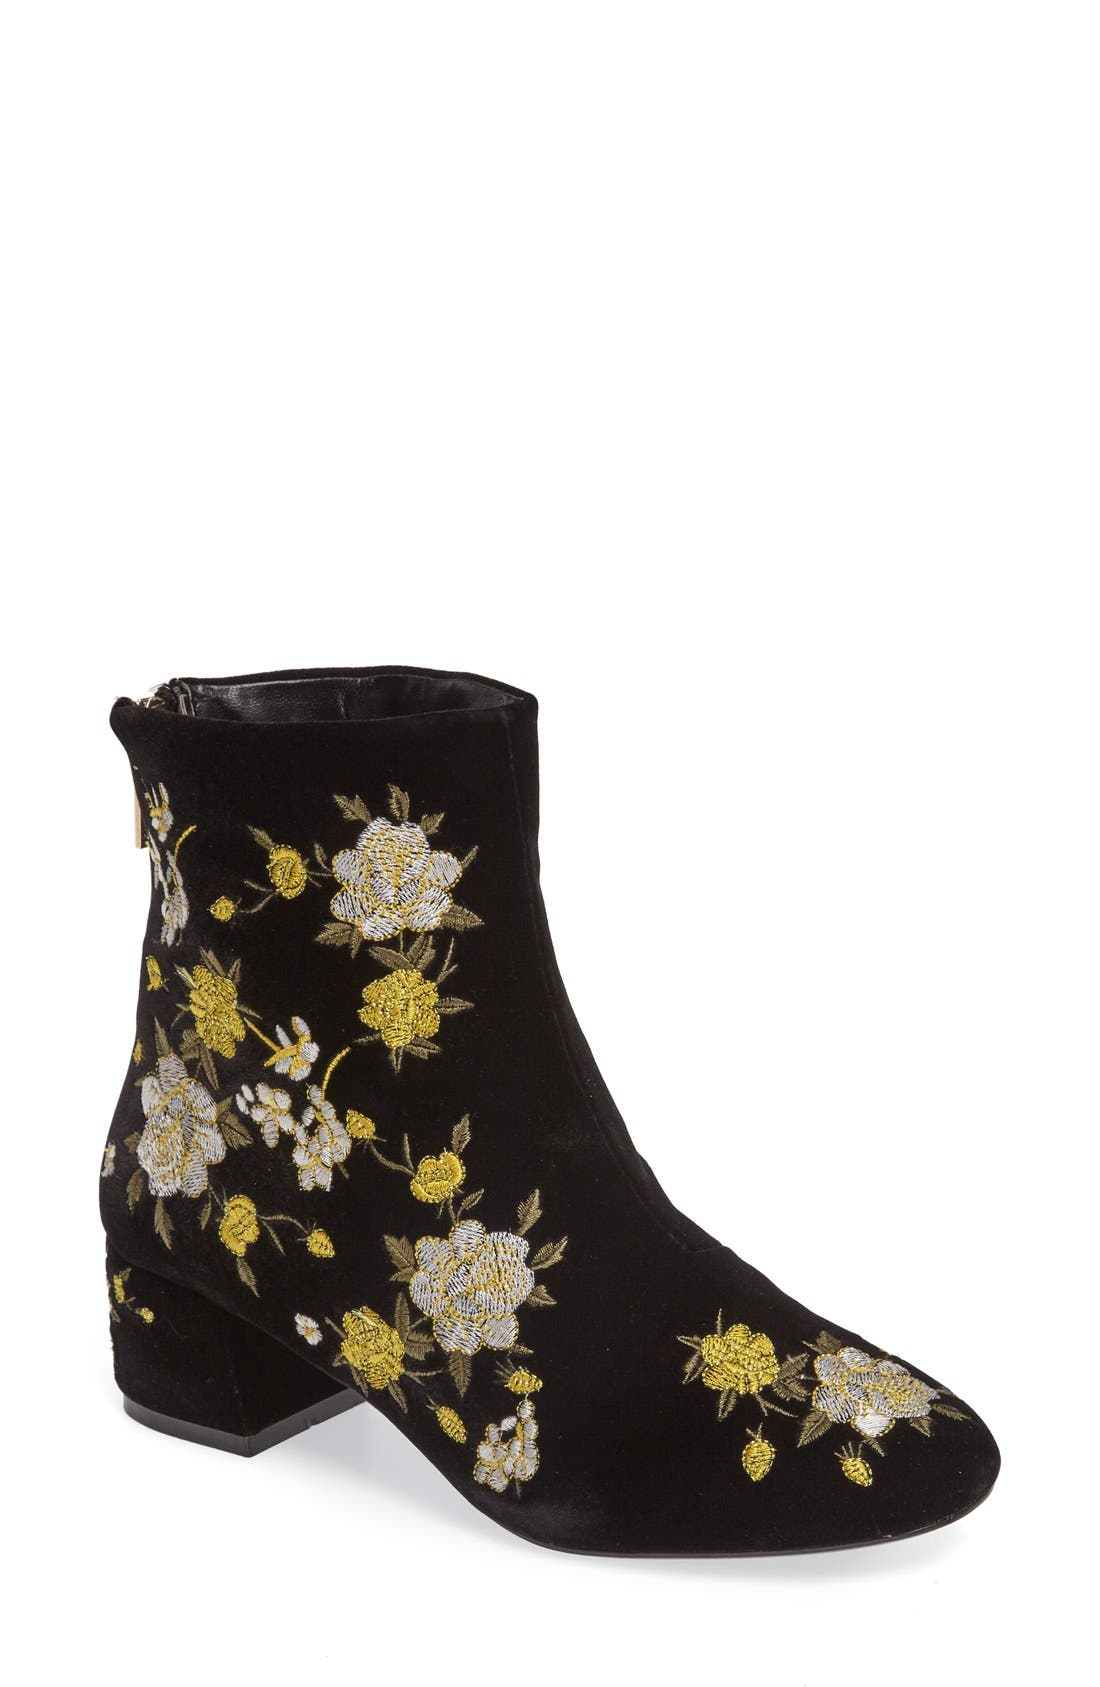 Main Image - Topshop Blossom Embroidered Bootie (Women)